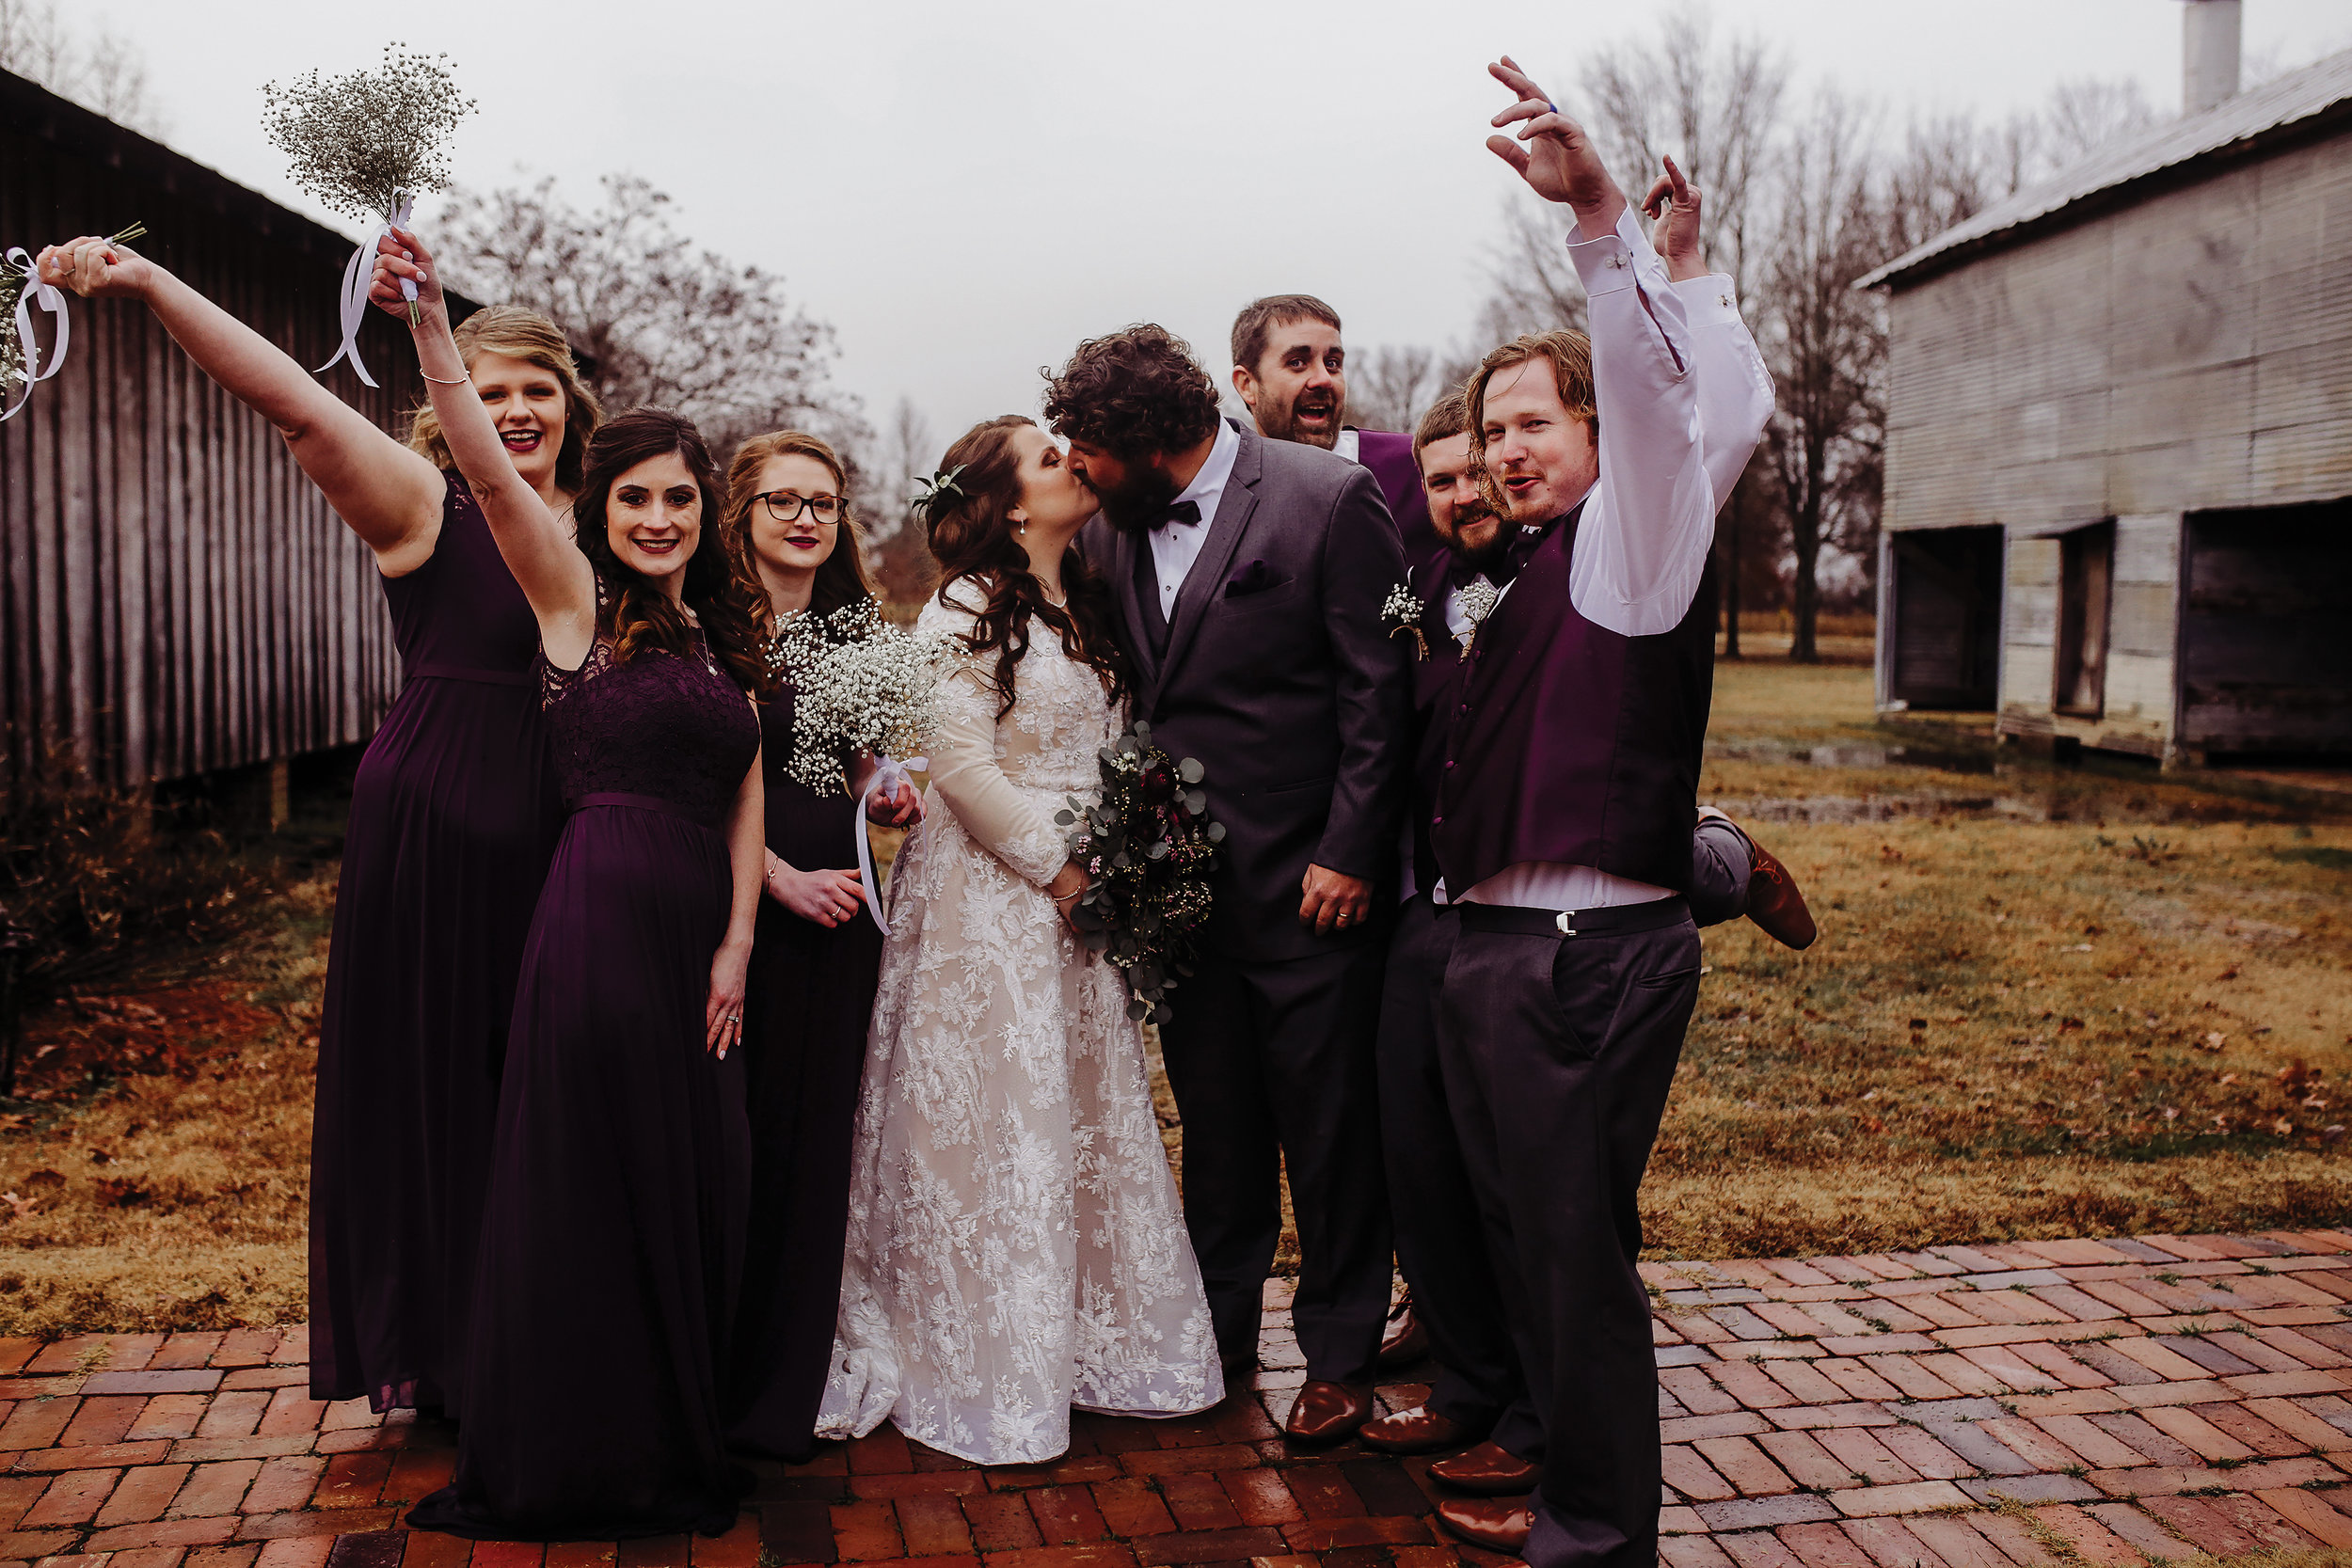 S. Hilliard Wedding105.jpg